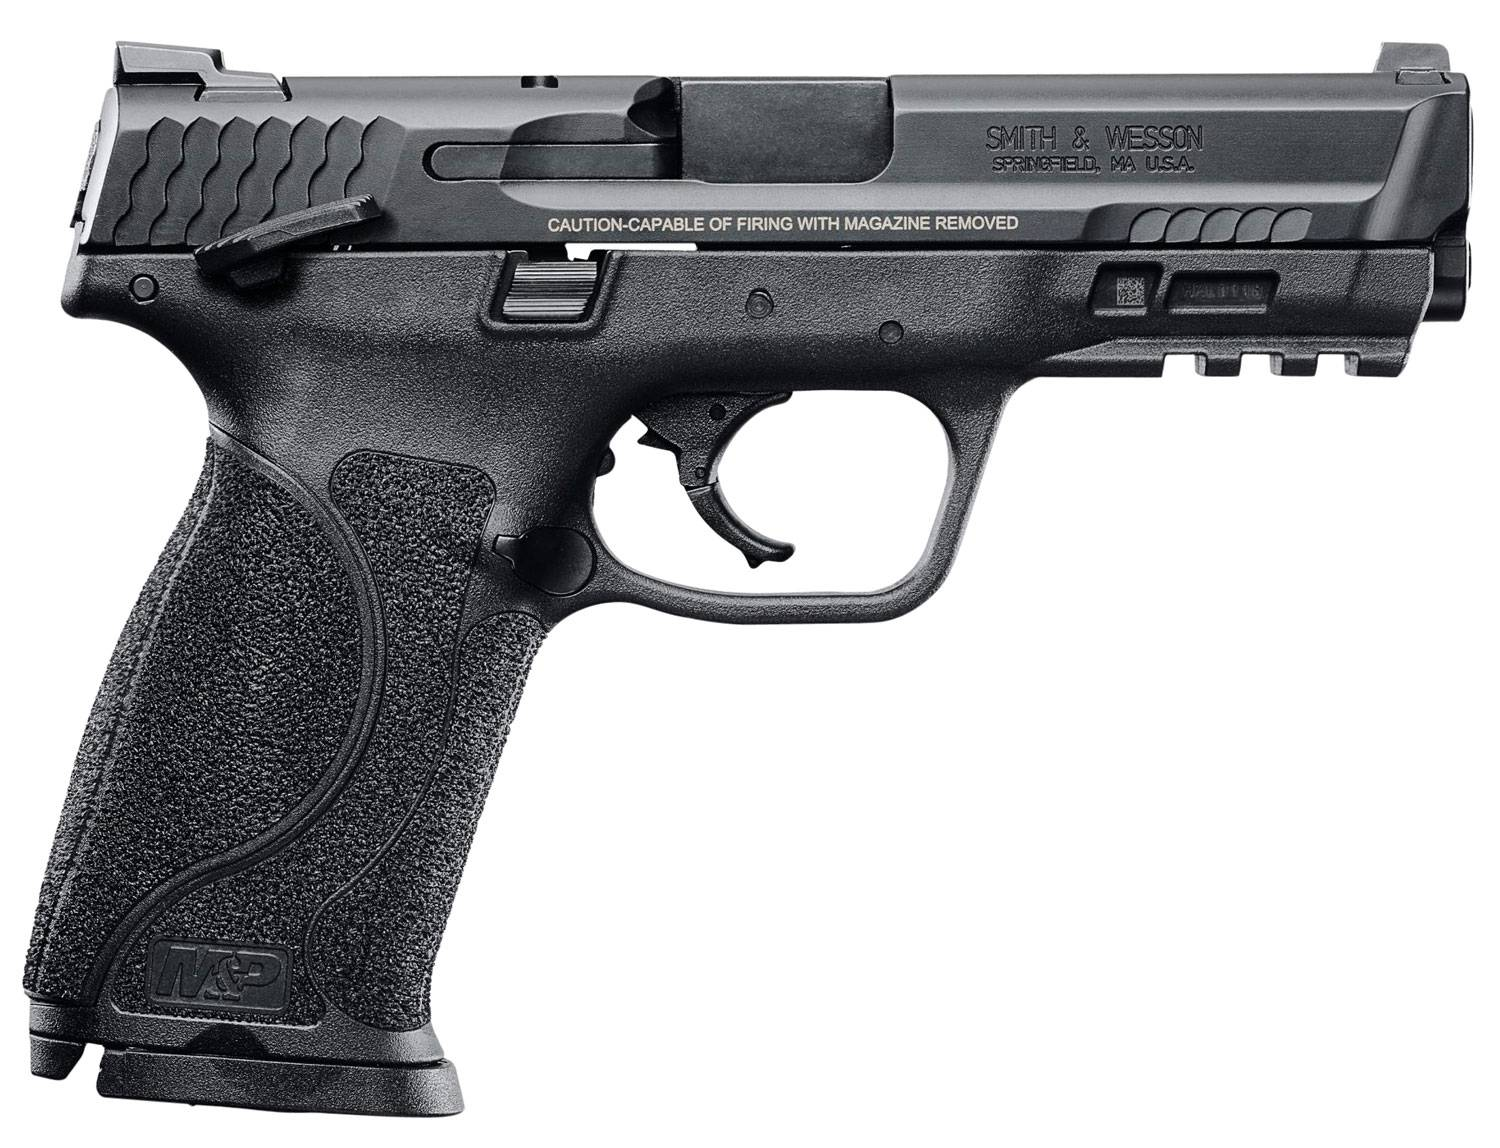 Smith & Wesson 11525 M&P 40 M2.0 TS Double 40 Smith & Wesson (S&W) 4.25